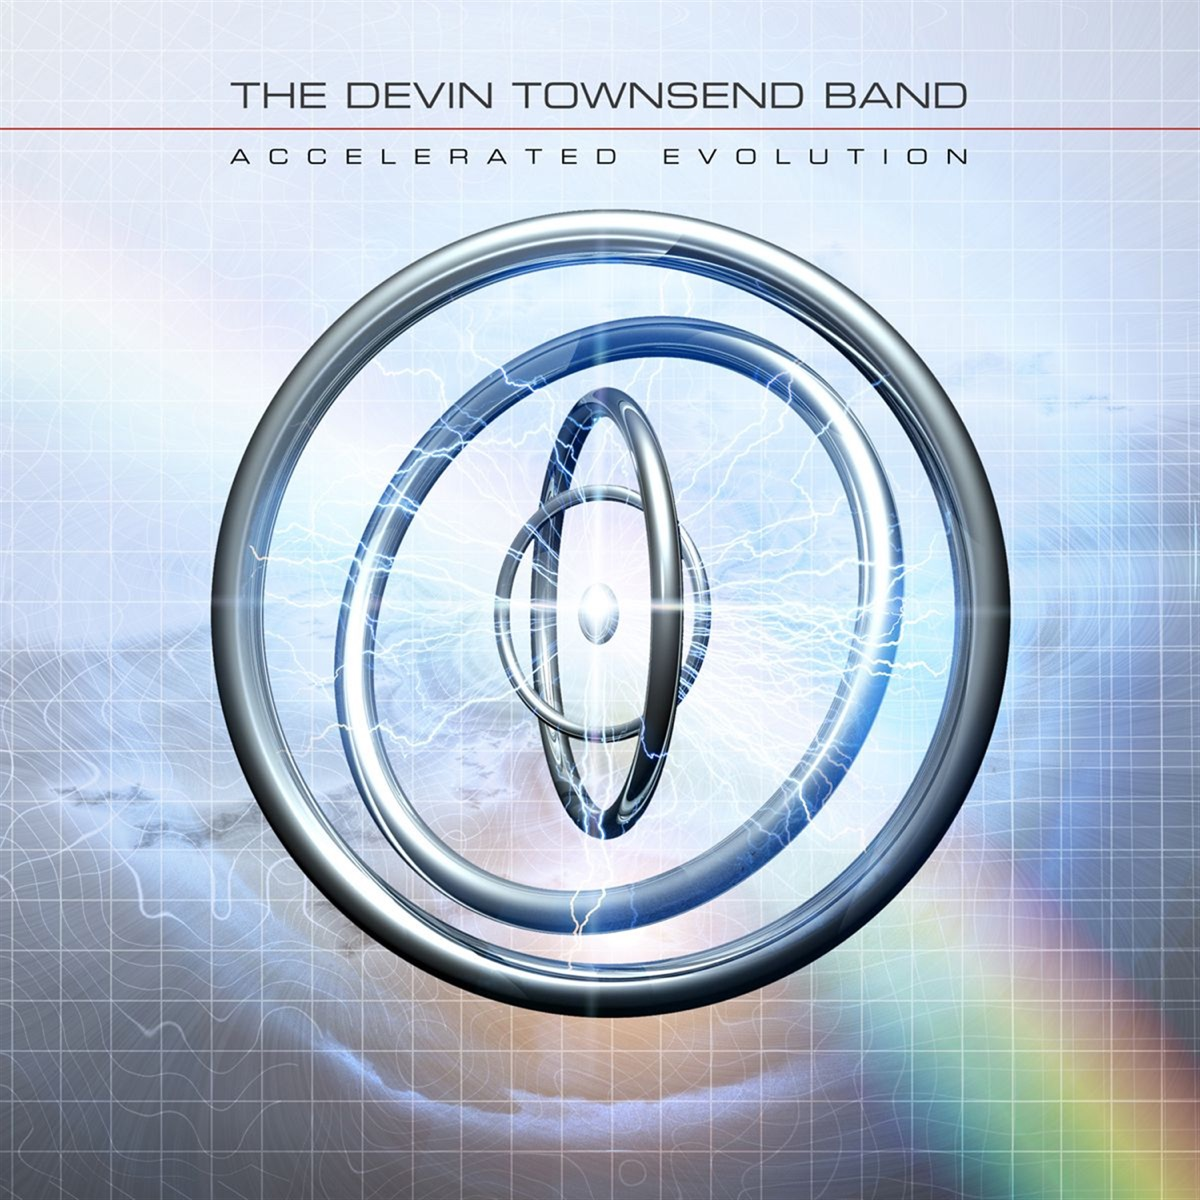 Accelerated Evolution The Devin Townsend Band CD cover